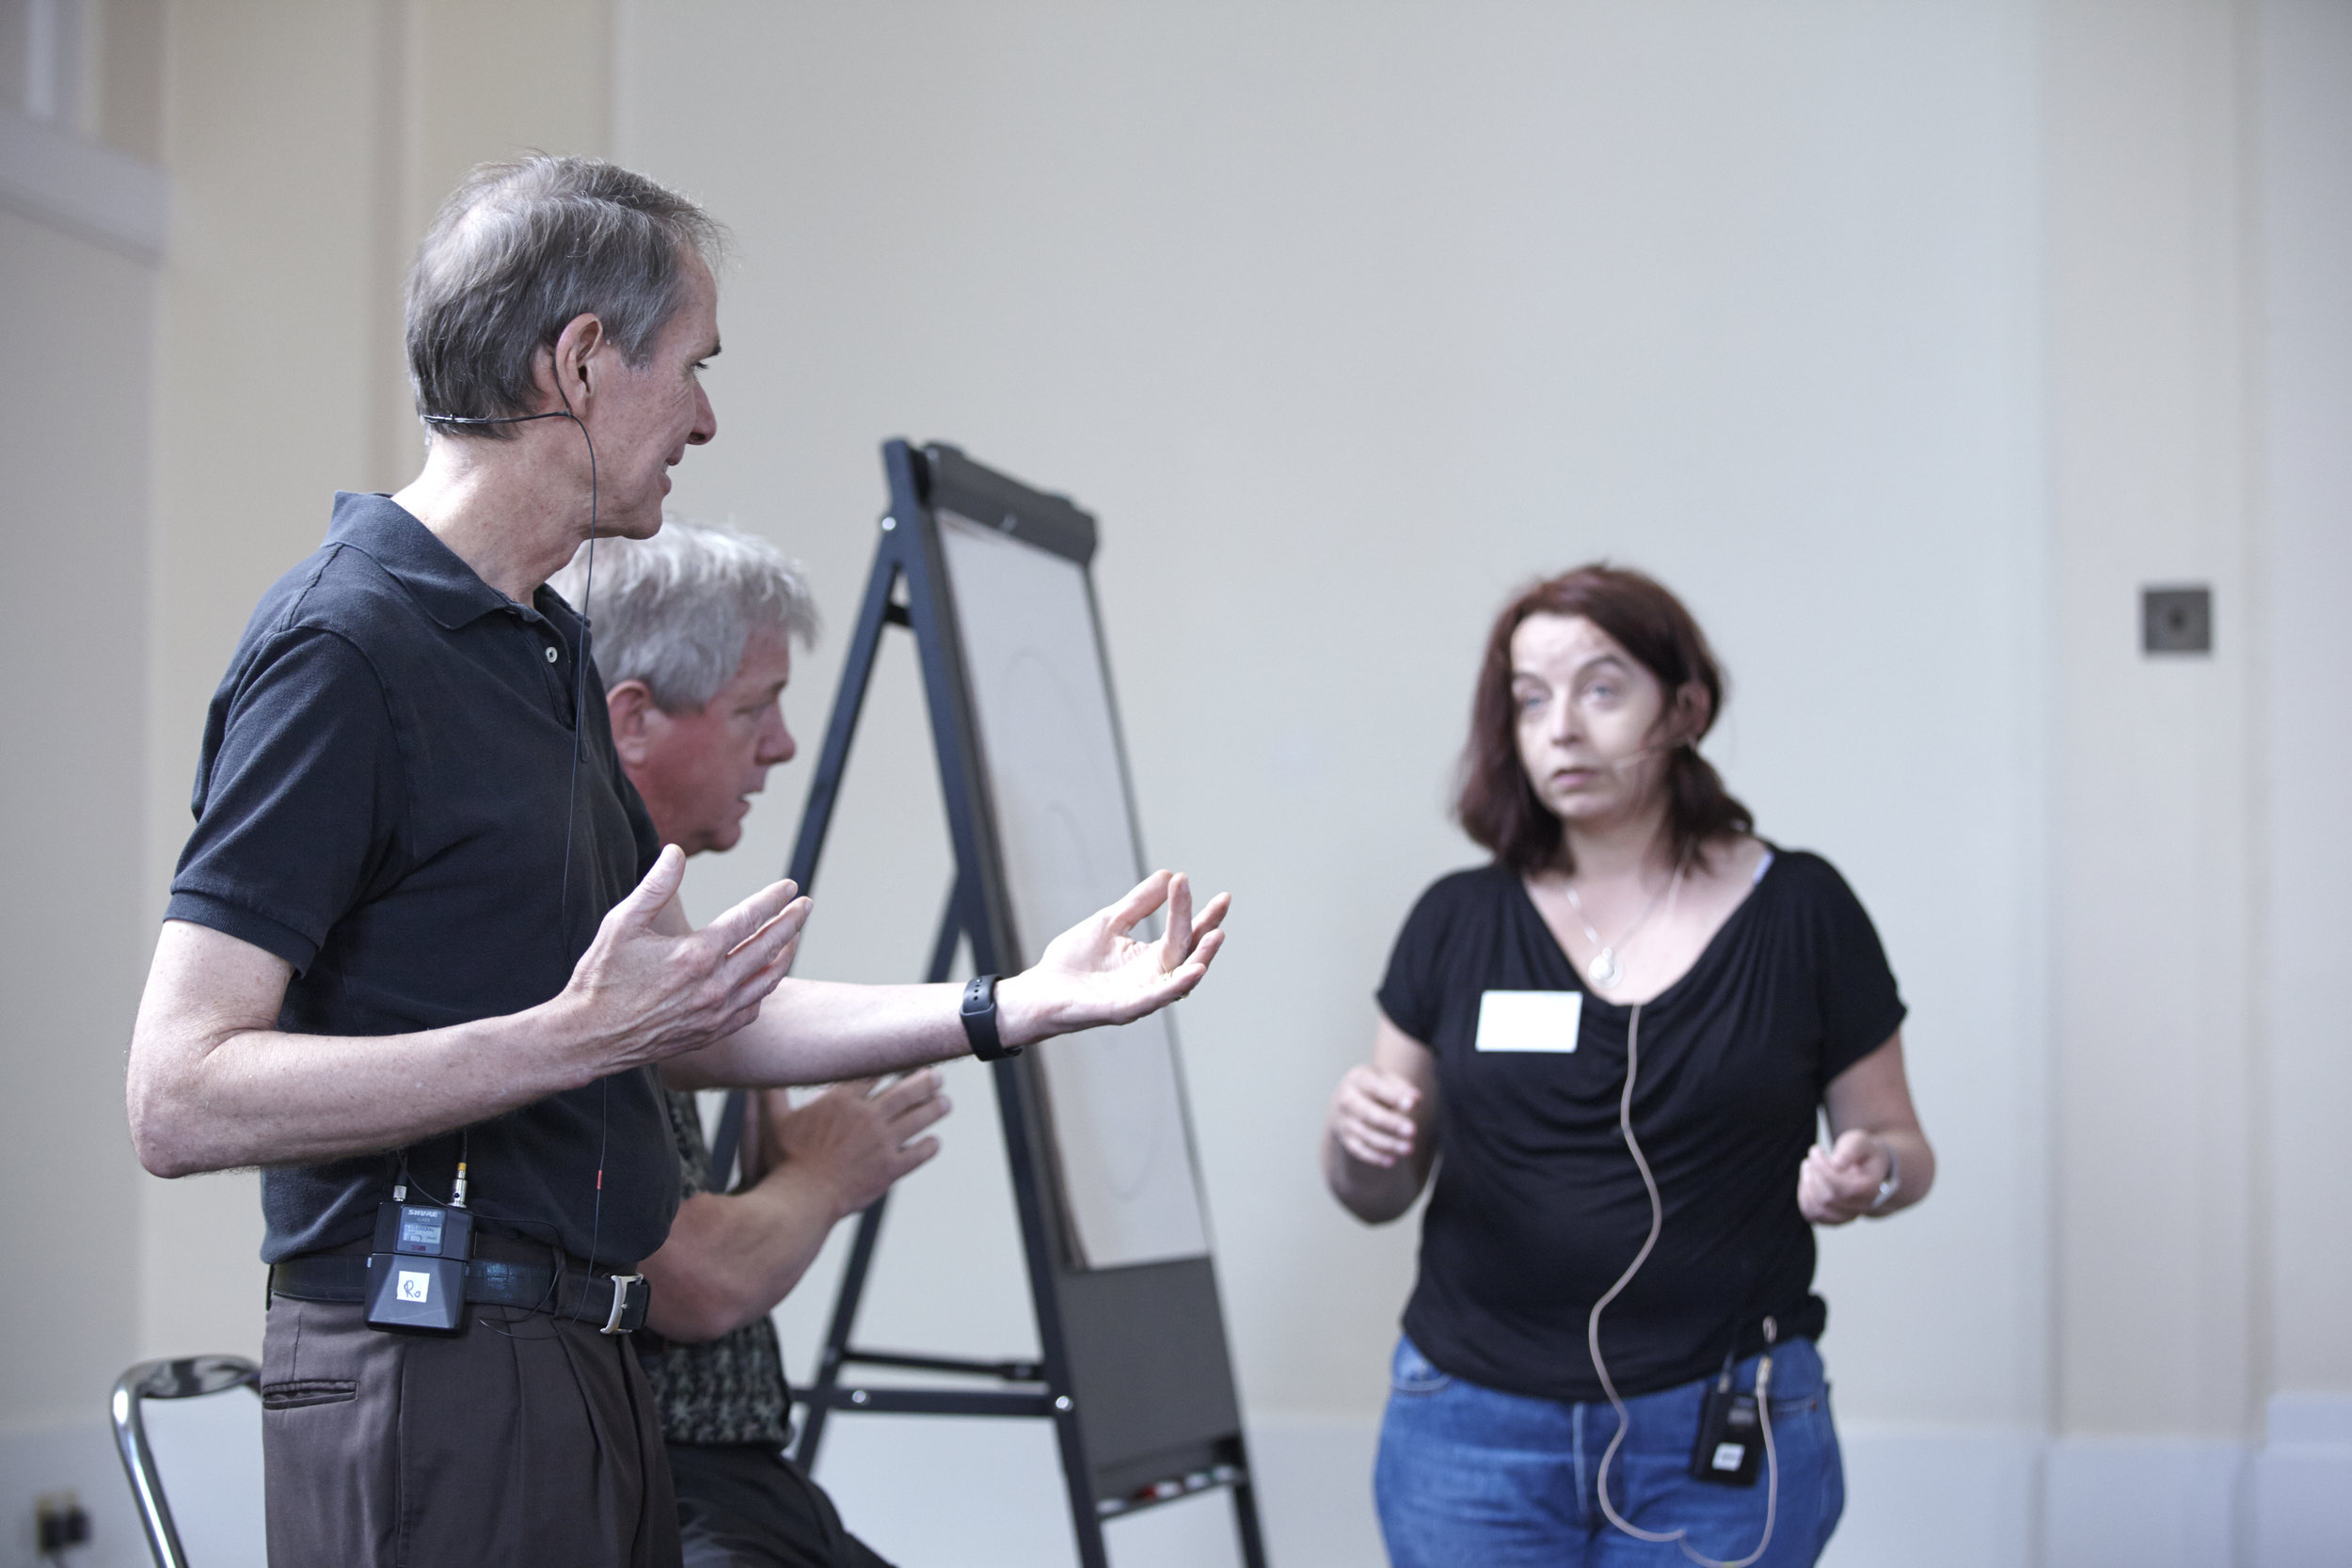 Steve Rober and client on stage arms out .jpg